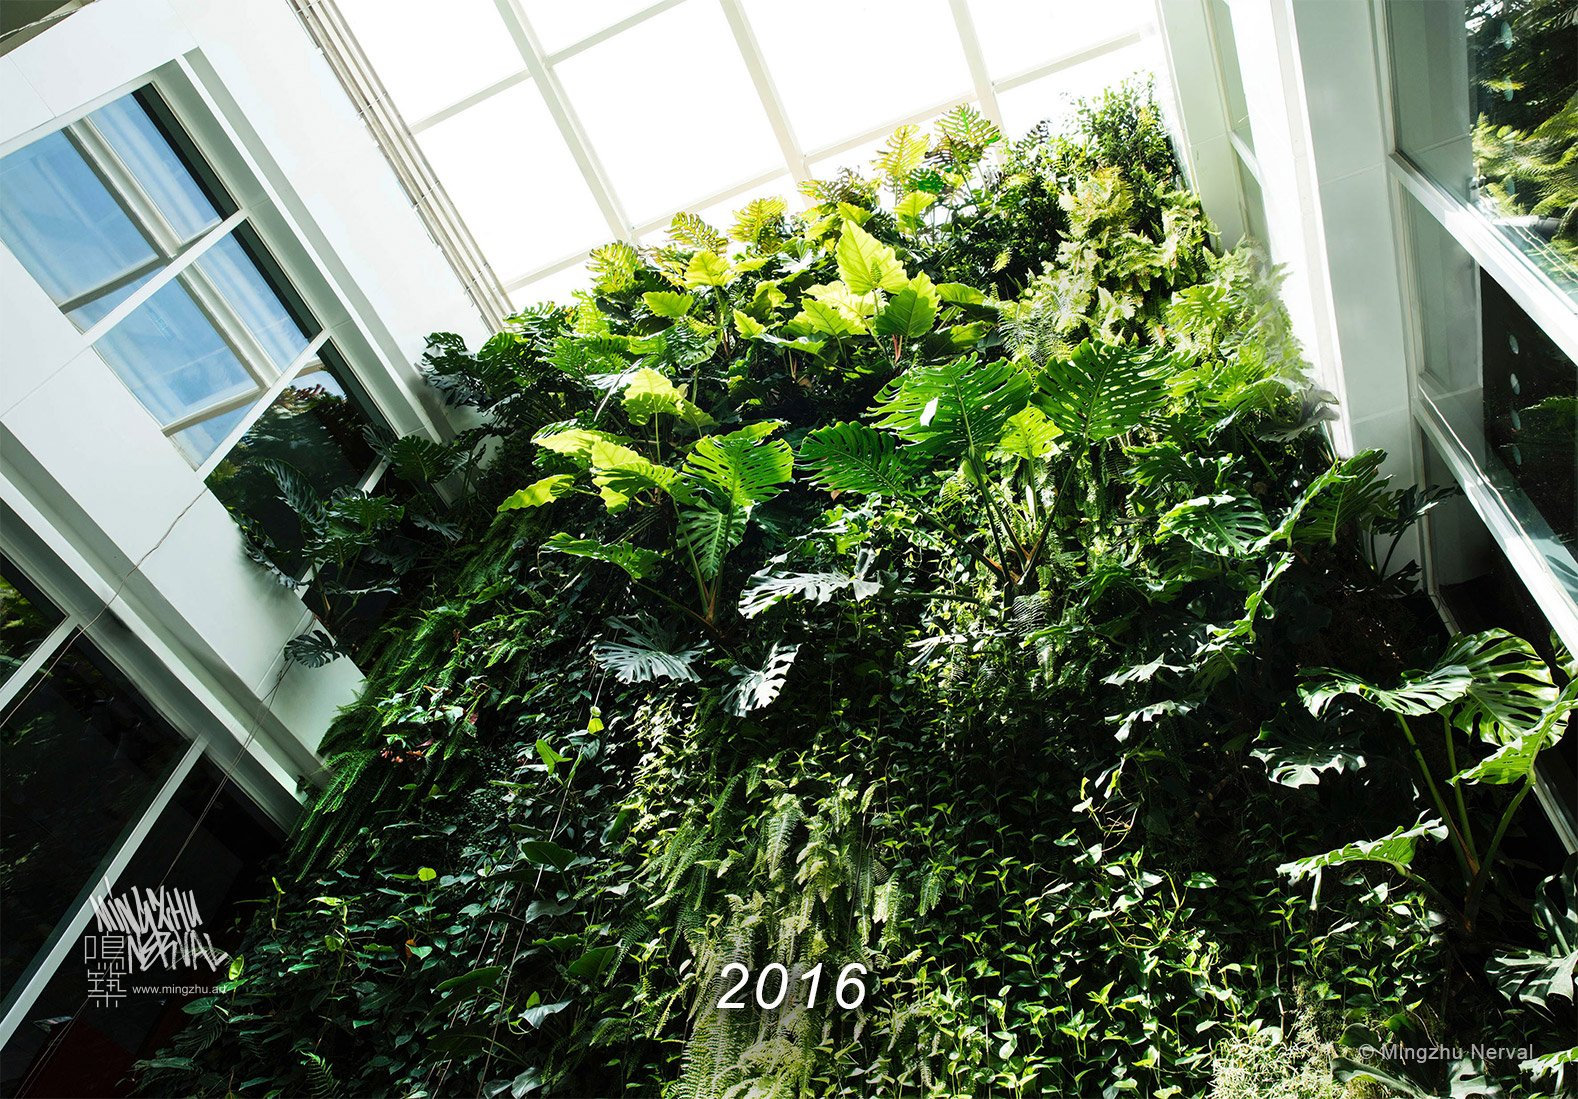 Mingzhu Nerval vertical living wall experts created the best garden design art at Clariant in Shanghai, 2016